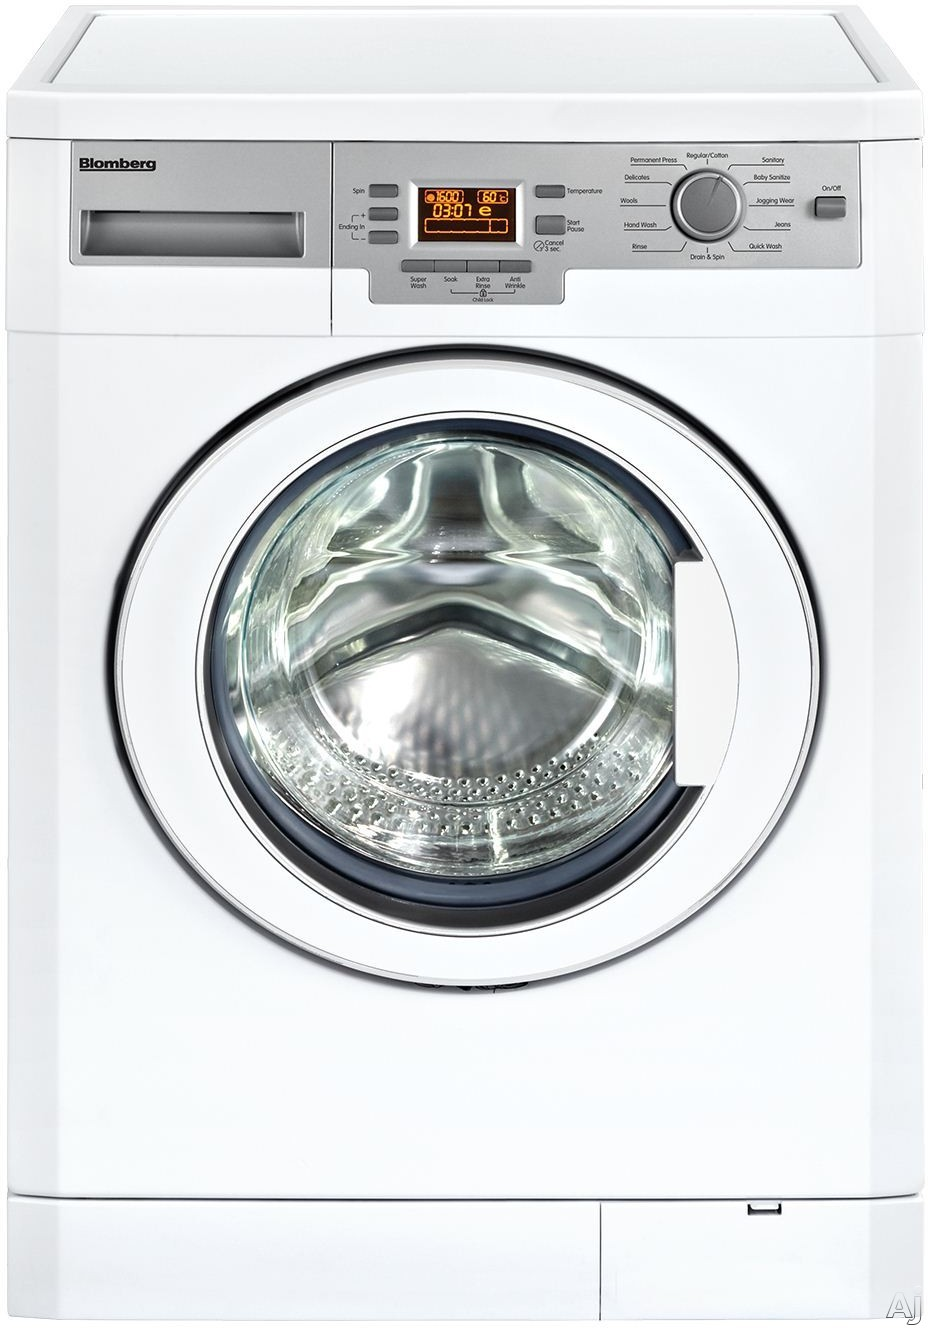 Blomberg WM77120 24 Inch Front-Load Washer with Internal Heater, Anti-Creasing, BabyProtect Program, Bleach Dispenser, Automatic Water Adjustment, 12 Wash Programs, LCD Display, ENERGY STAR and 1.95 cu. ft. Capacity WM77120